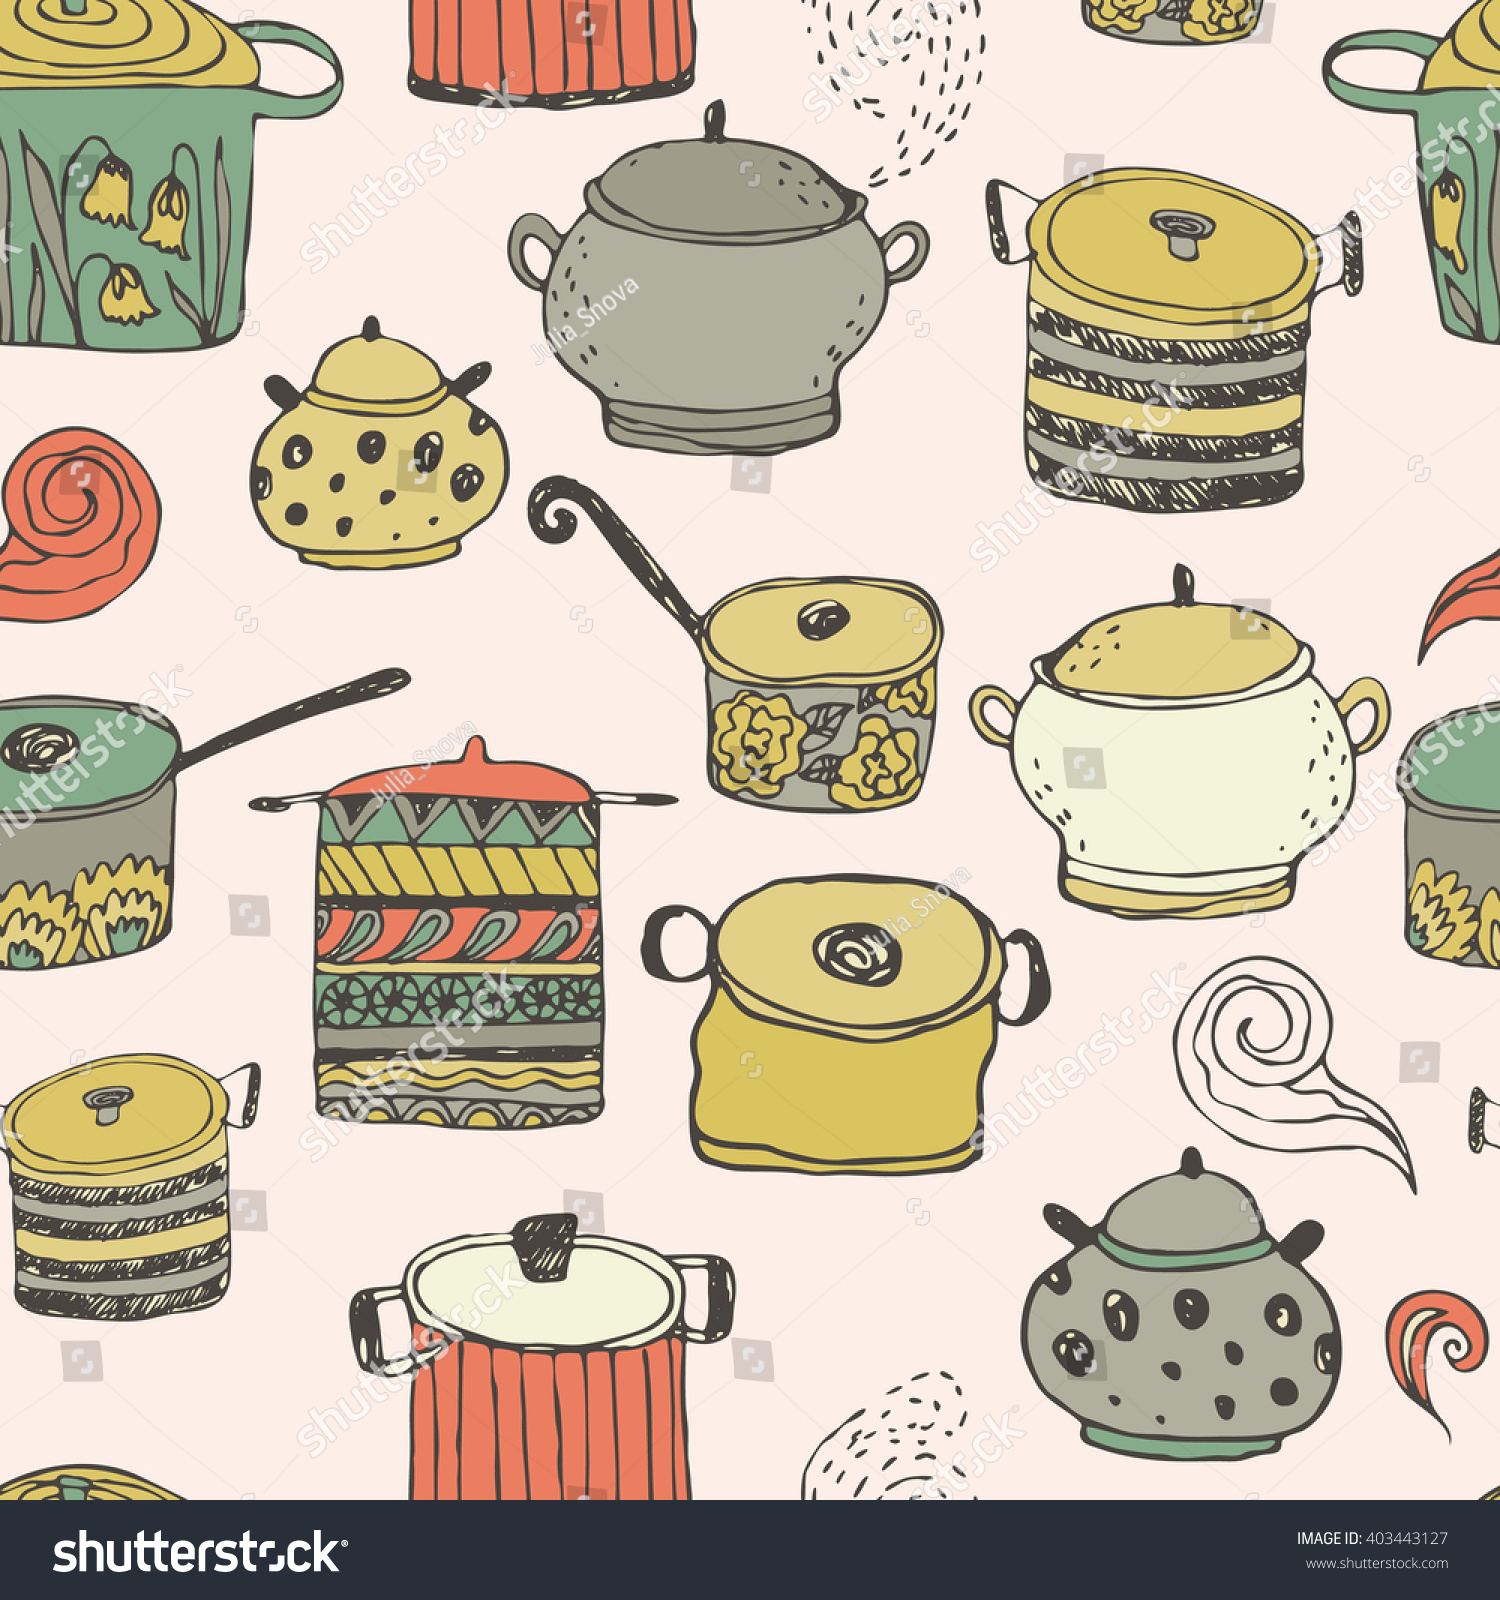 Scrapbook paper cooking - Cute Cooking Pots And Lettering Seamless Vector Pattern Trendy Background For Scrapbook Paper